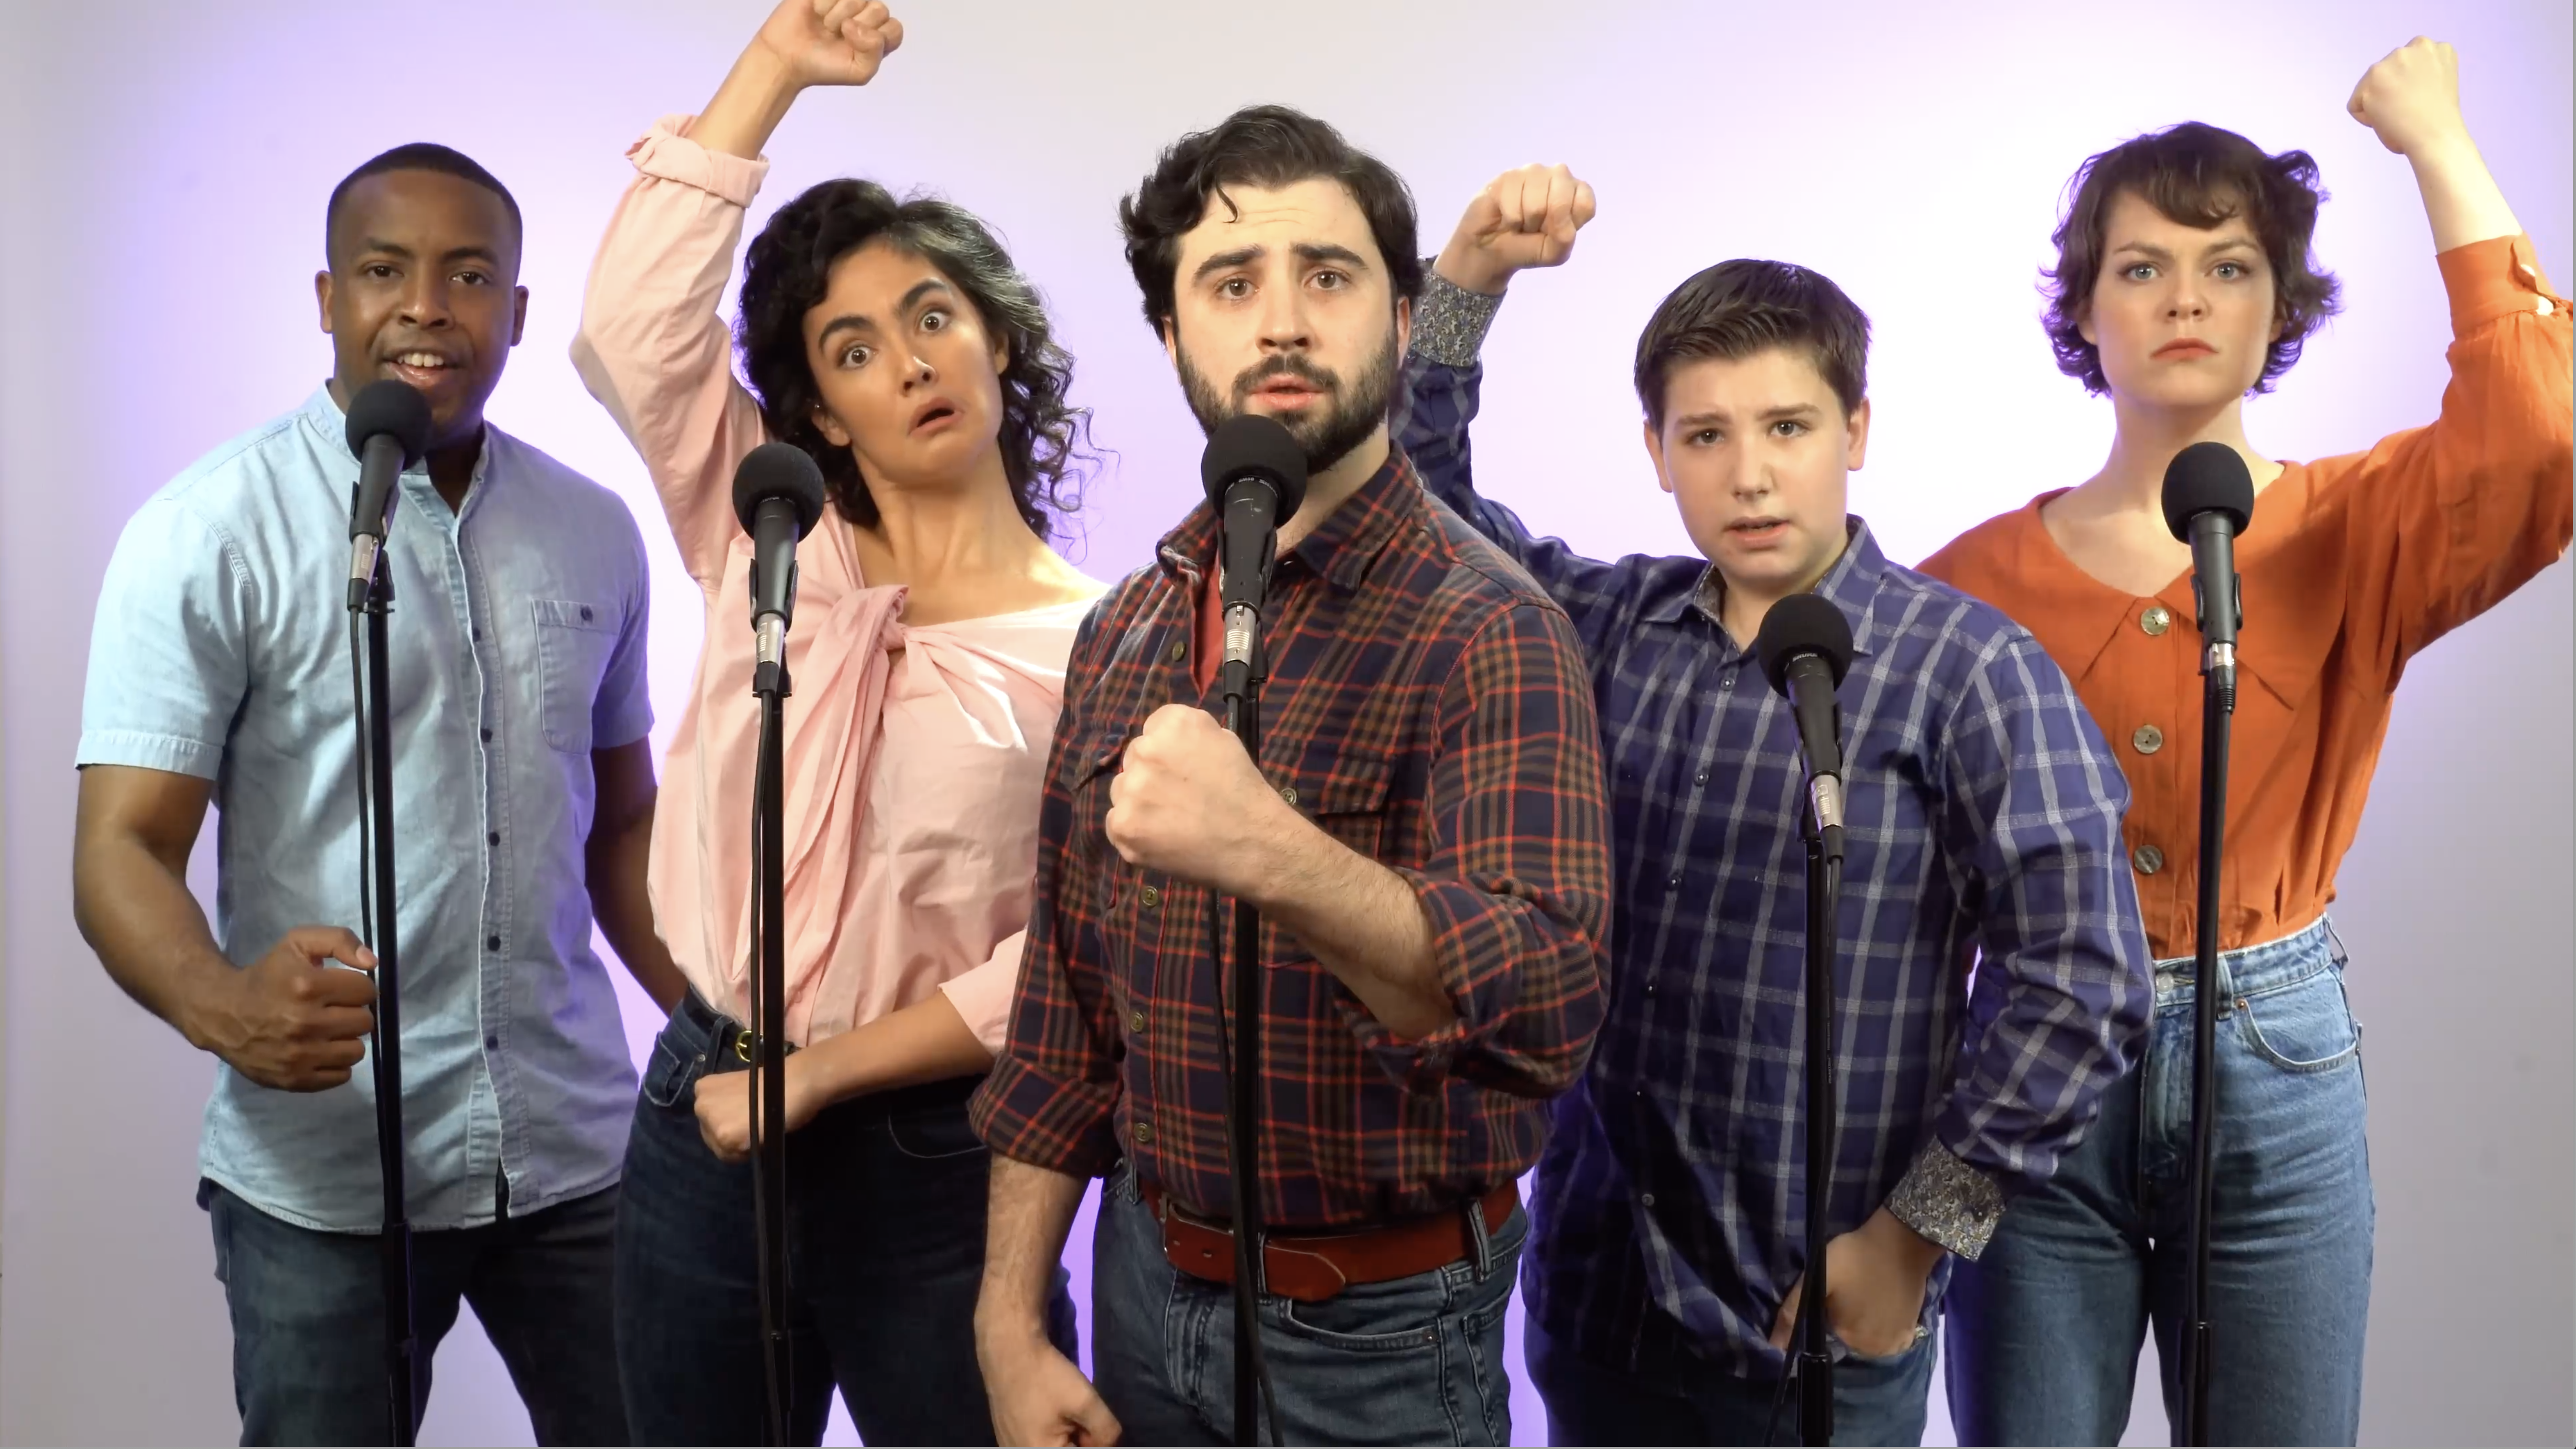 Watch an Exclusive Performance From Forbidden Broadway: The Next Generation